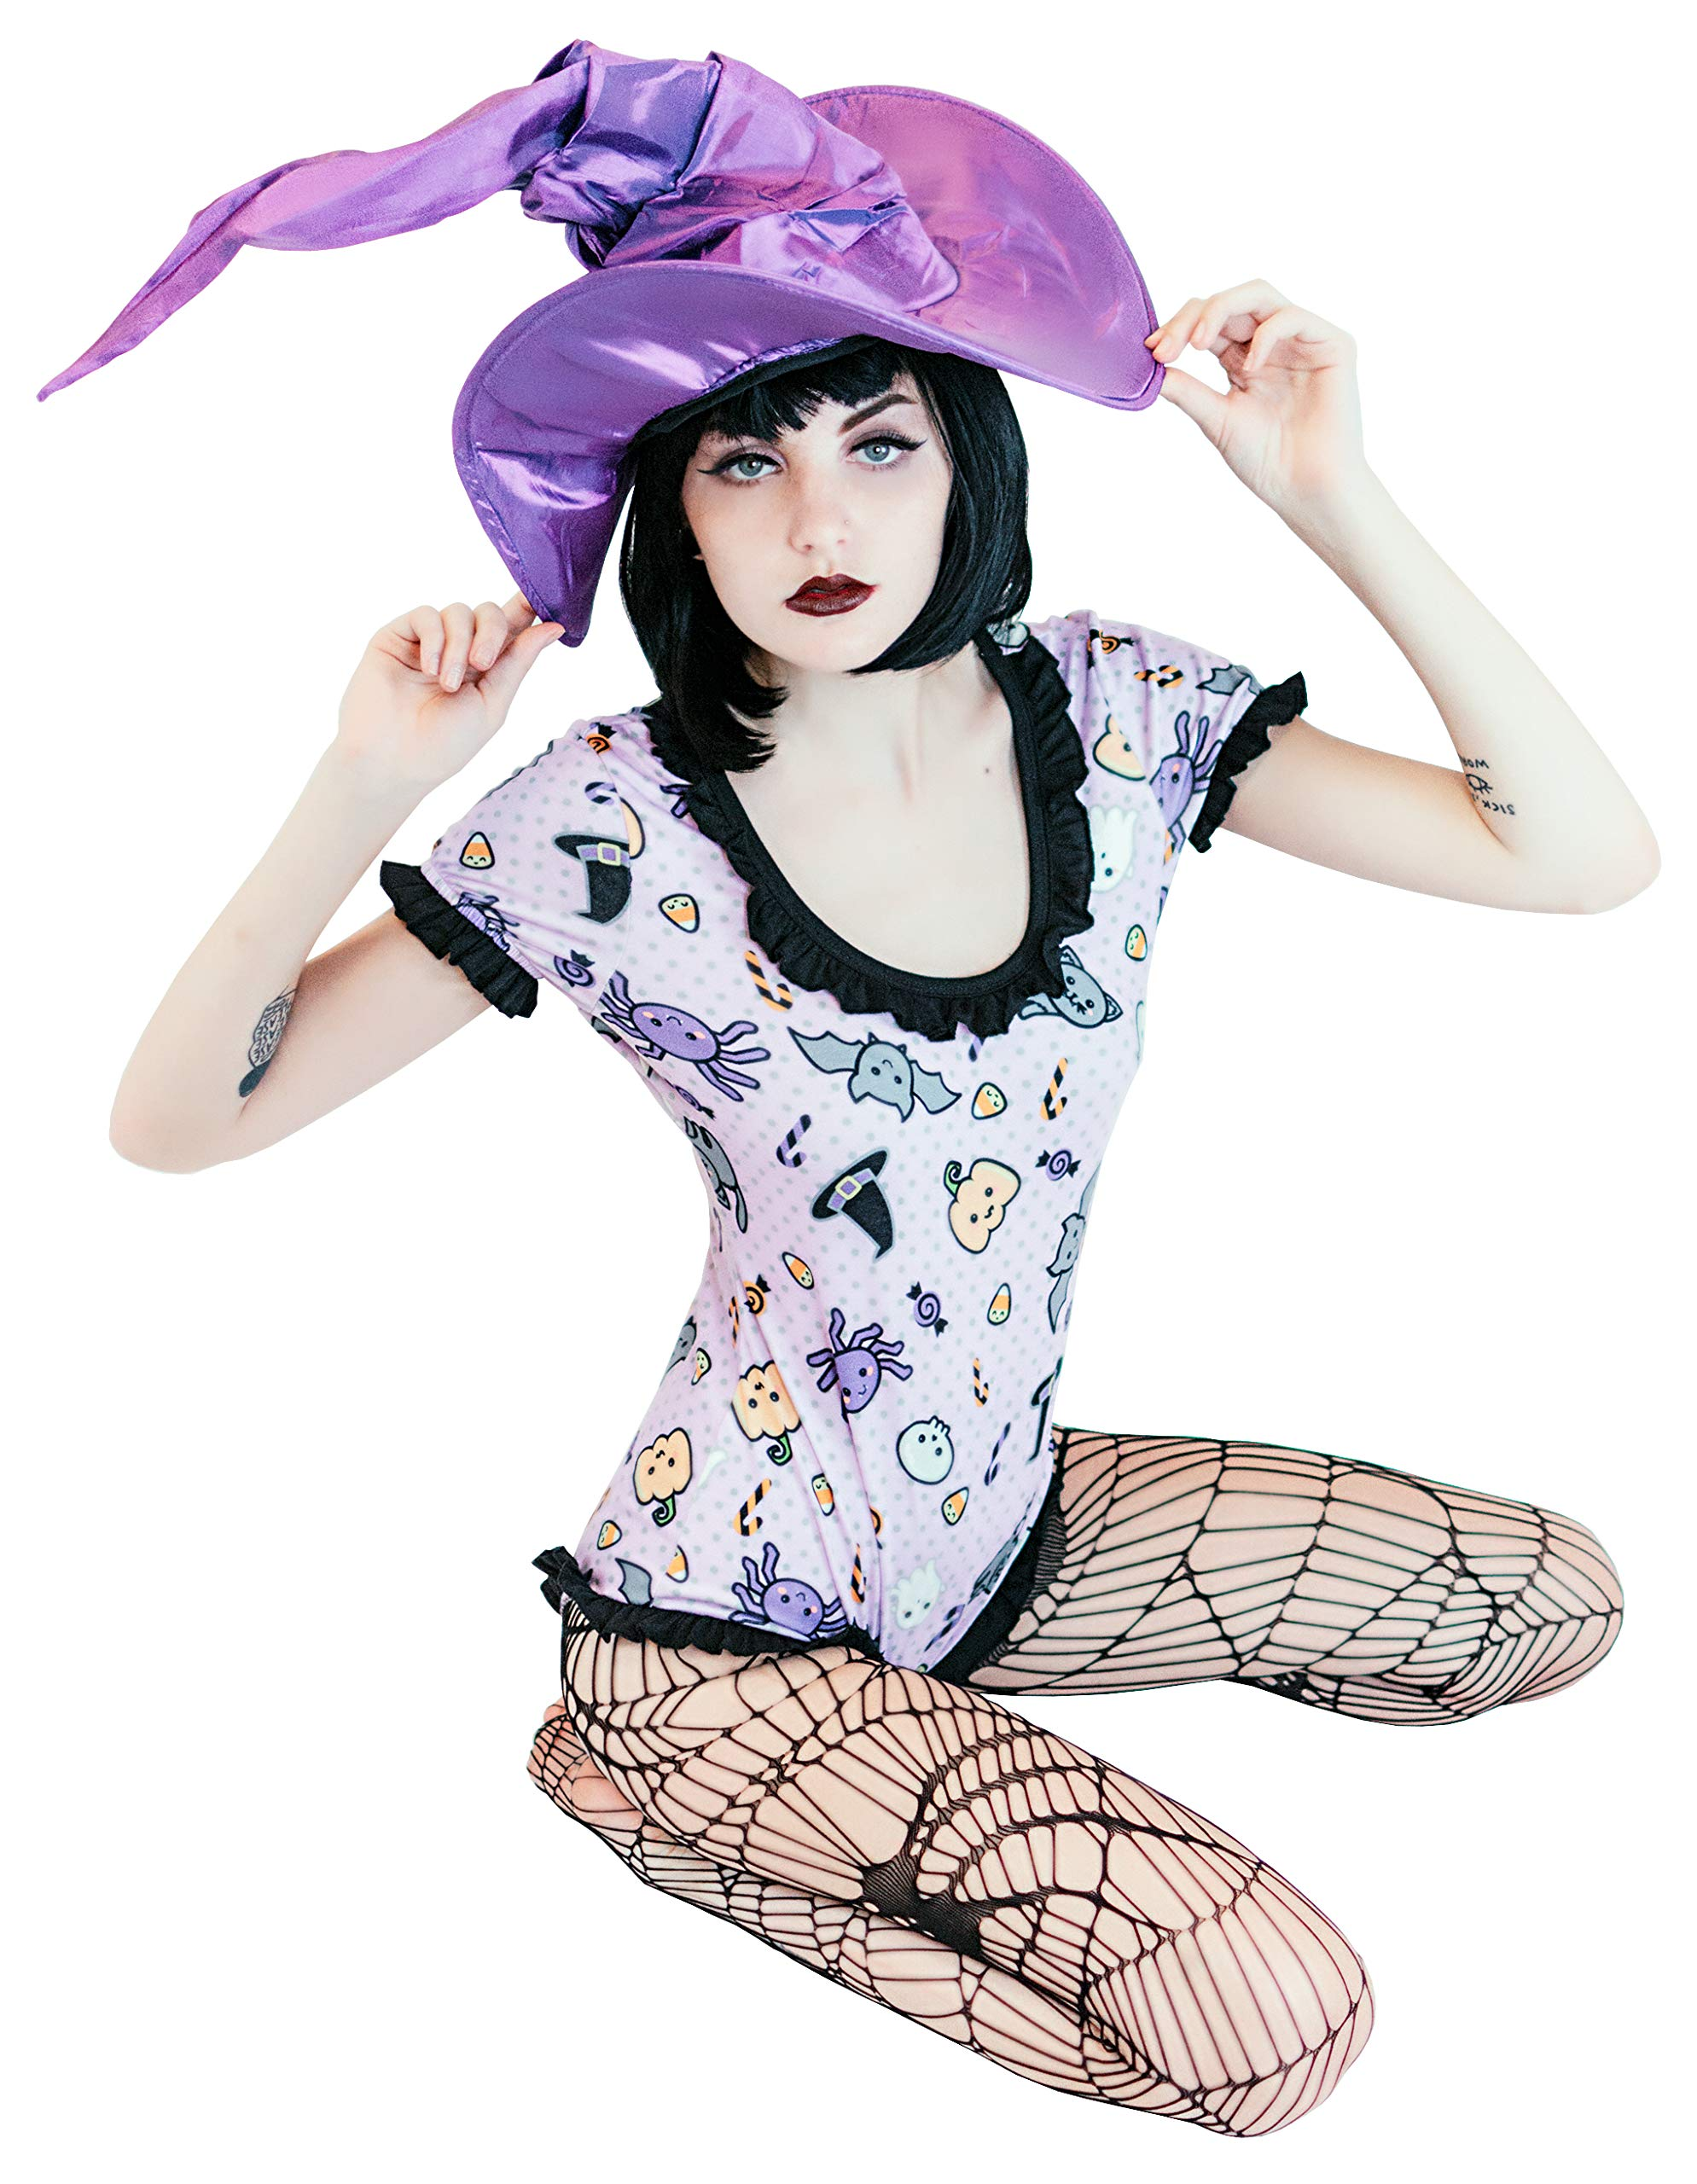 ENVY BODY SHOP Adult Baby & Diaper Lover(ABDL/DDLG/Little Space) Snap Crotch Spooky Halloween (XL)